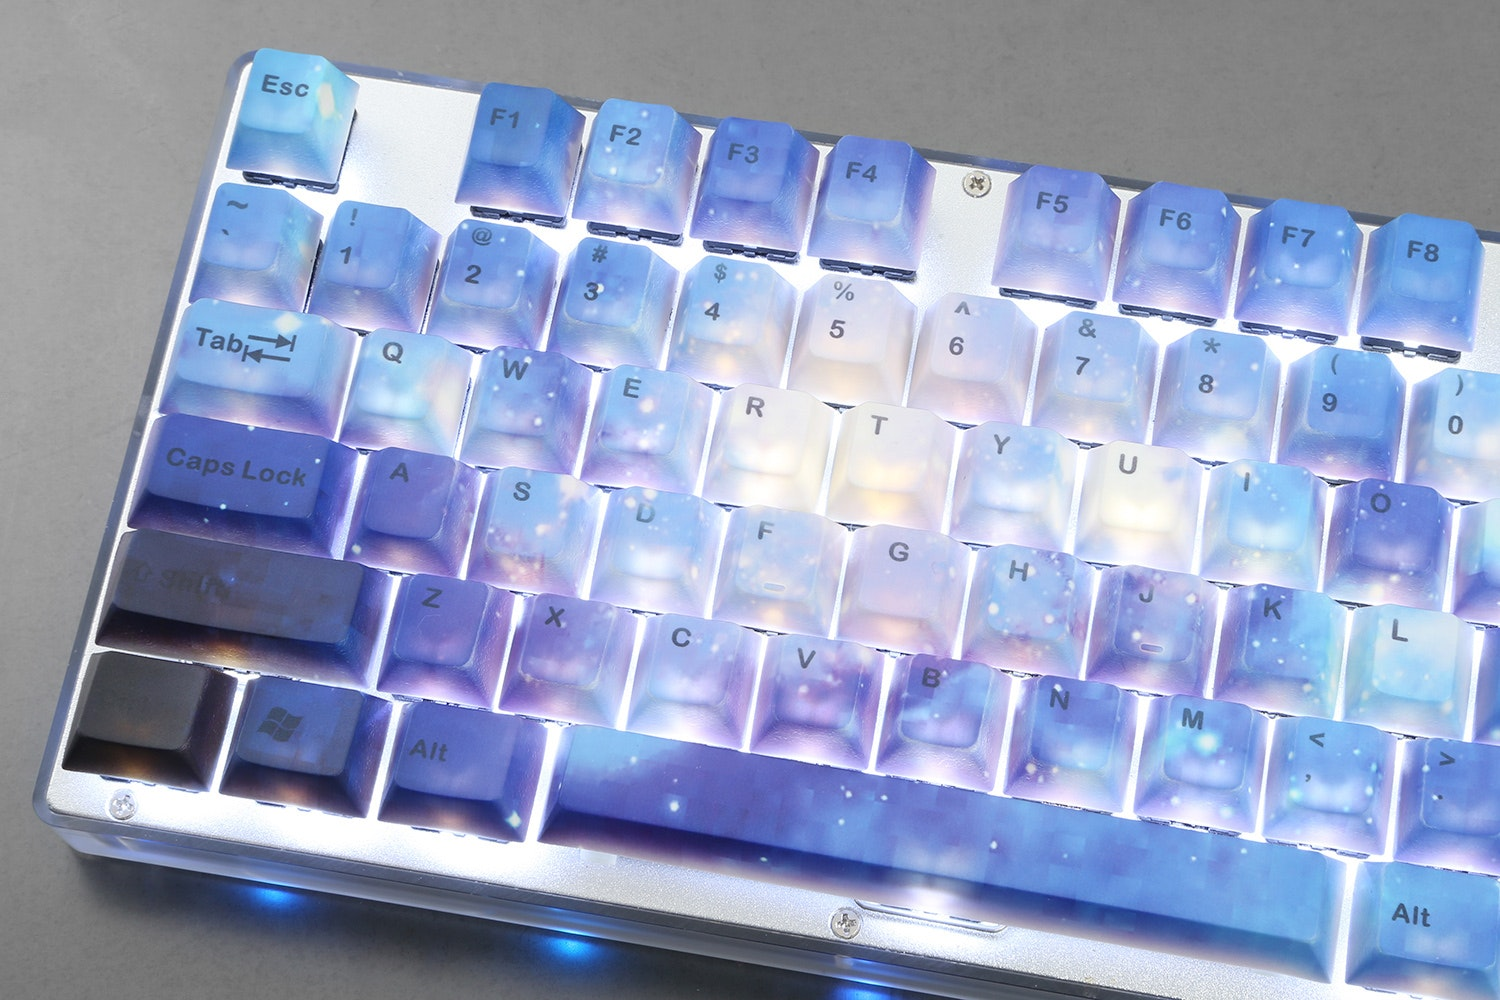 Milky Way PBT Dye-Subbed Keycap Set – Flash Sale